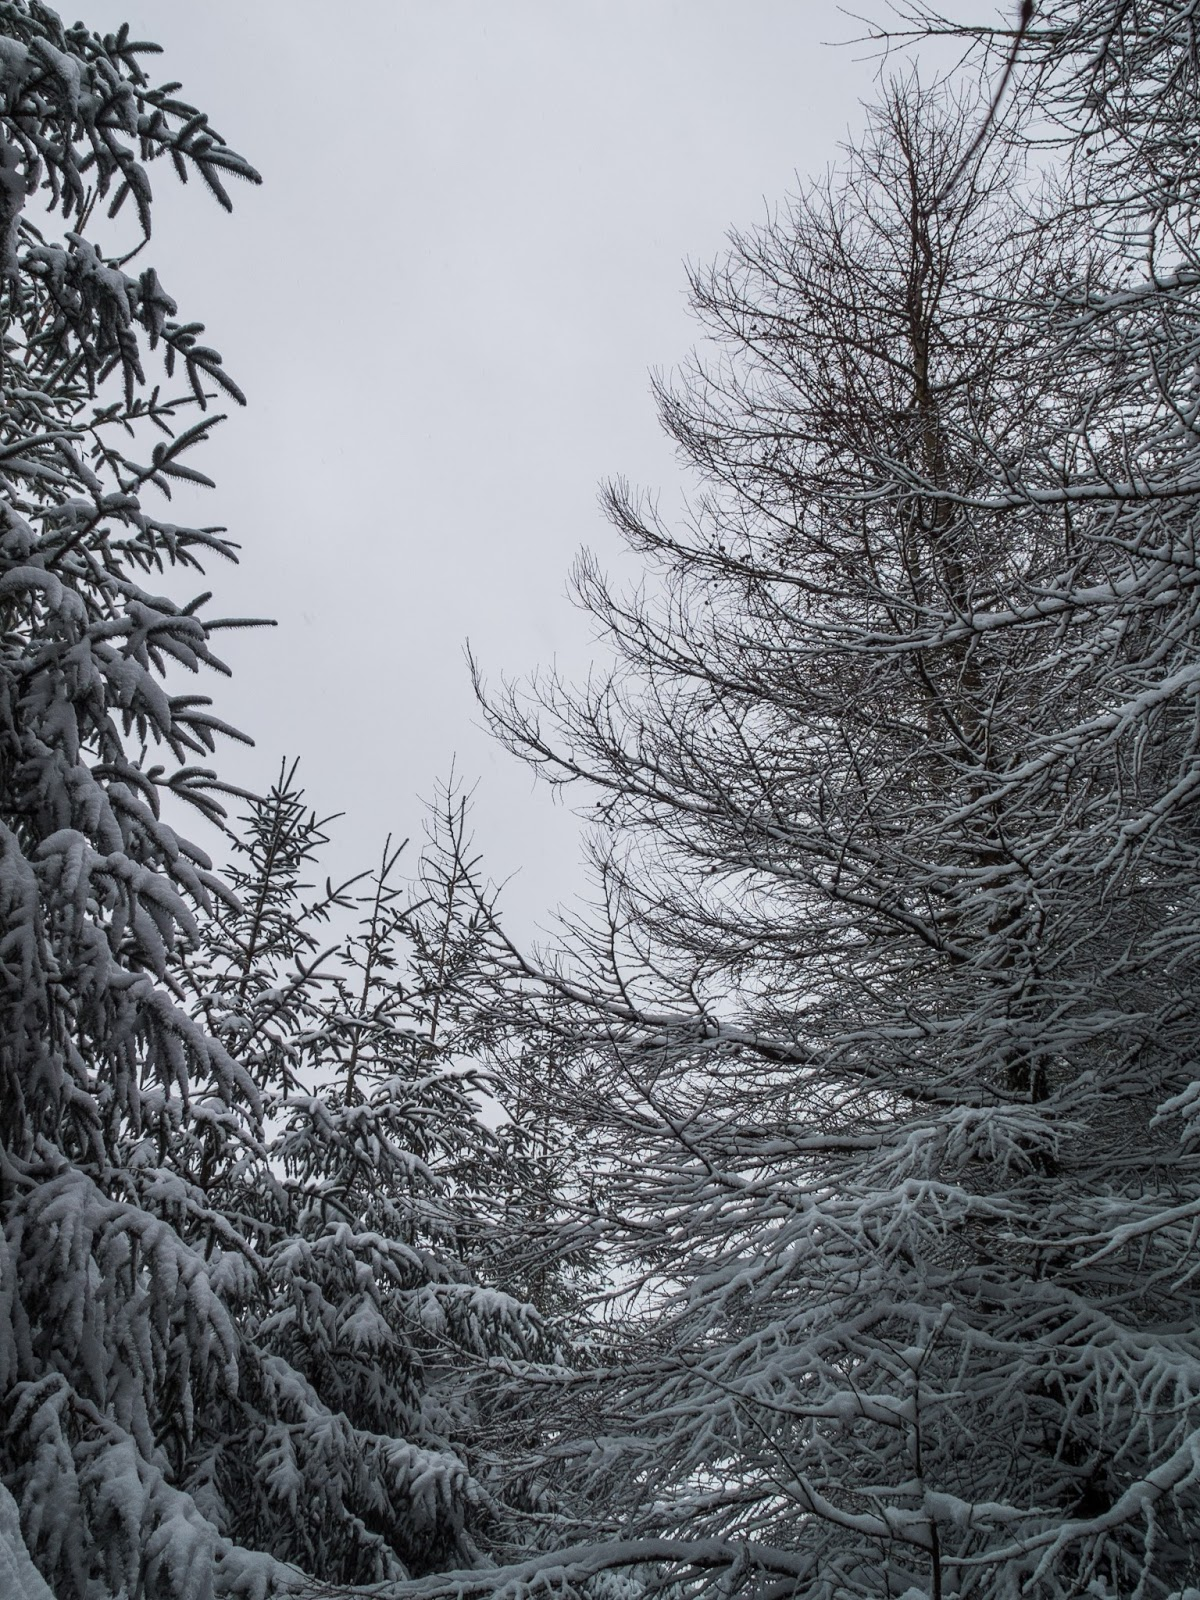 Snow covered pine trees in an opening inside a forest.